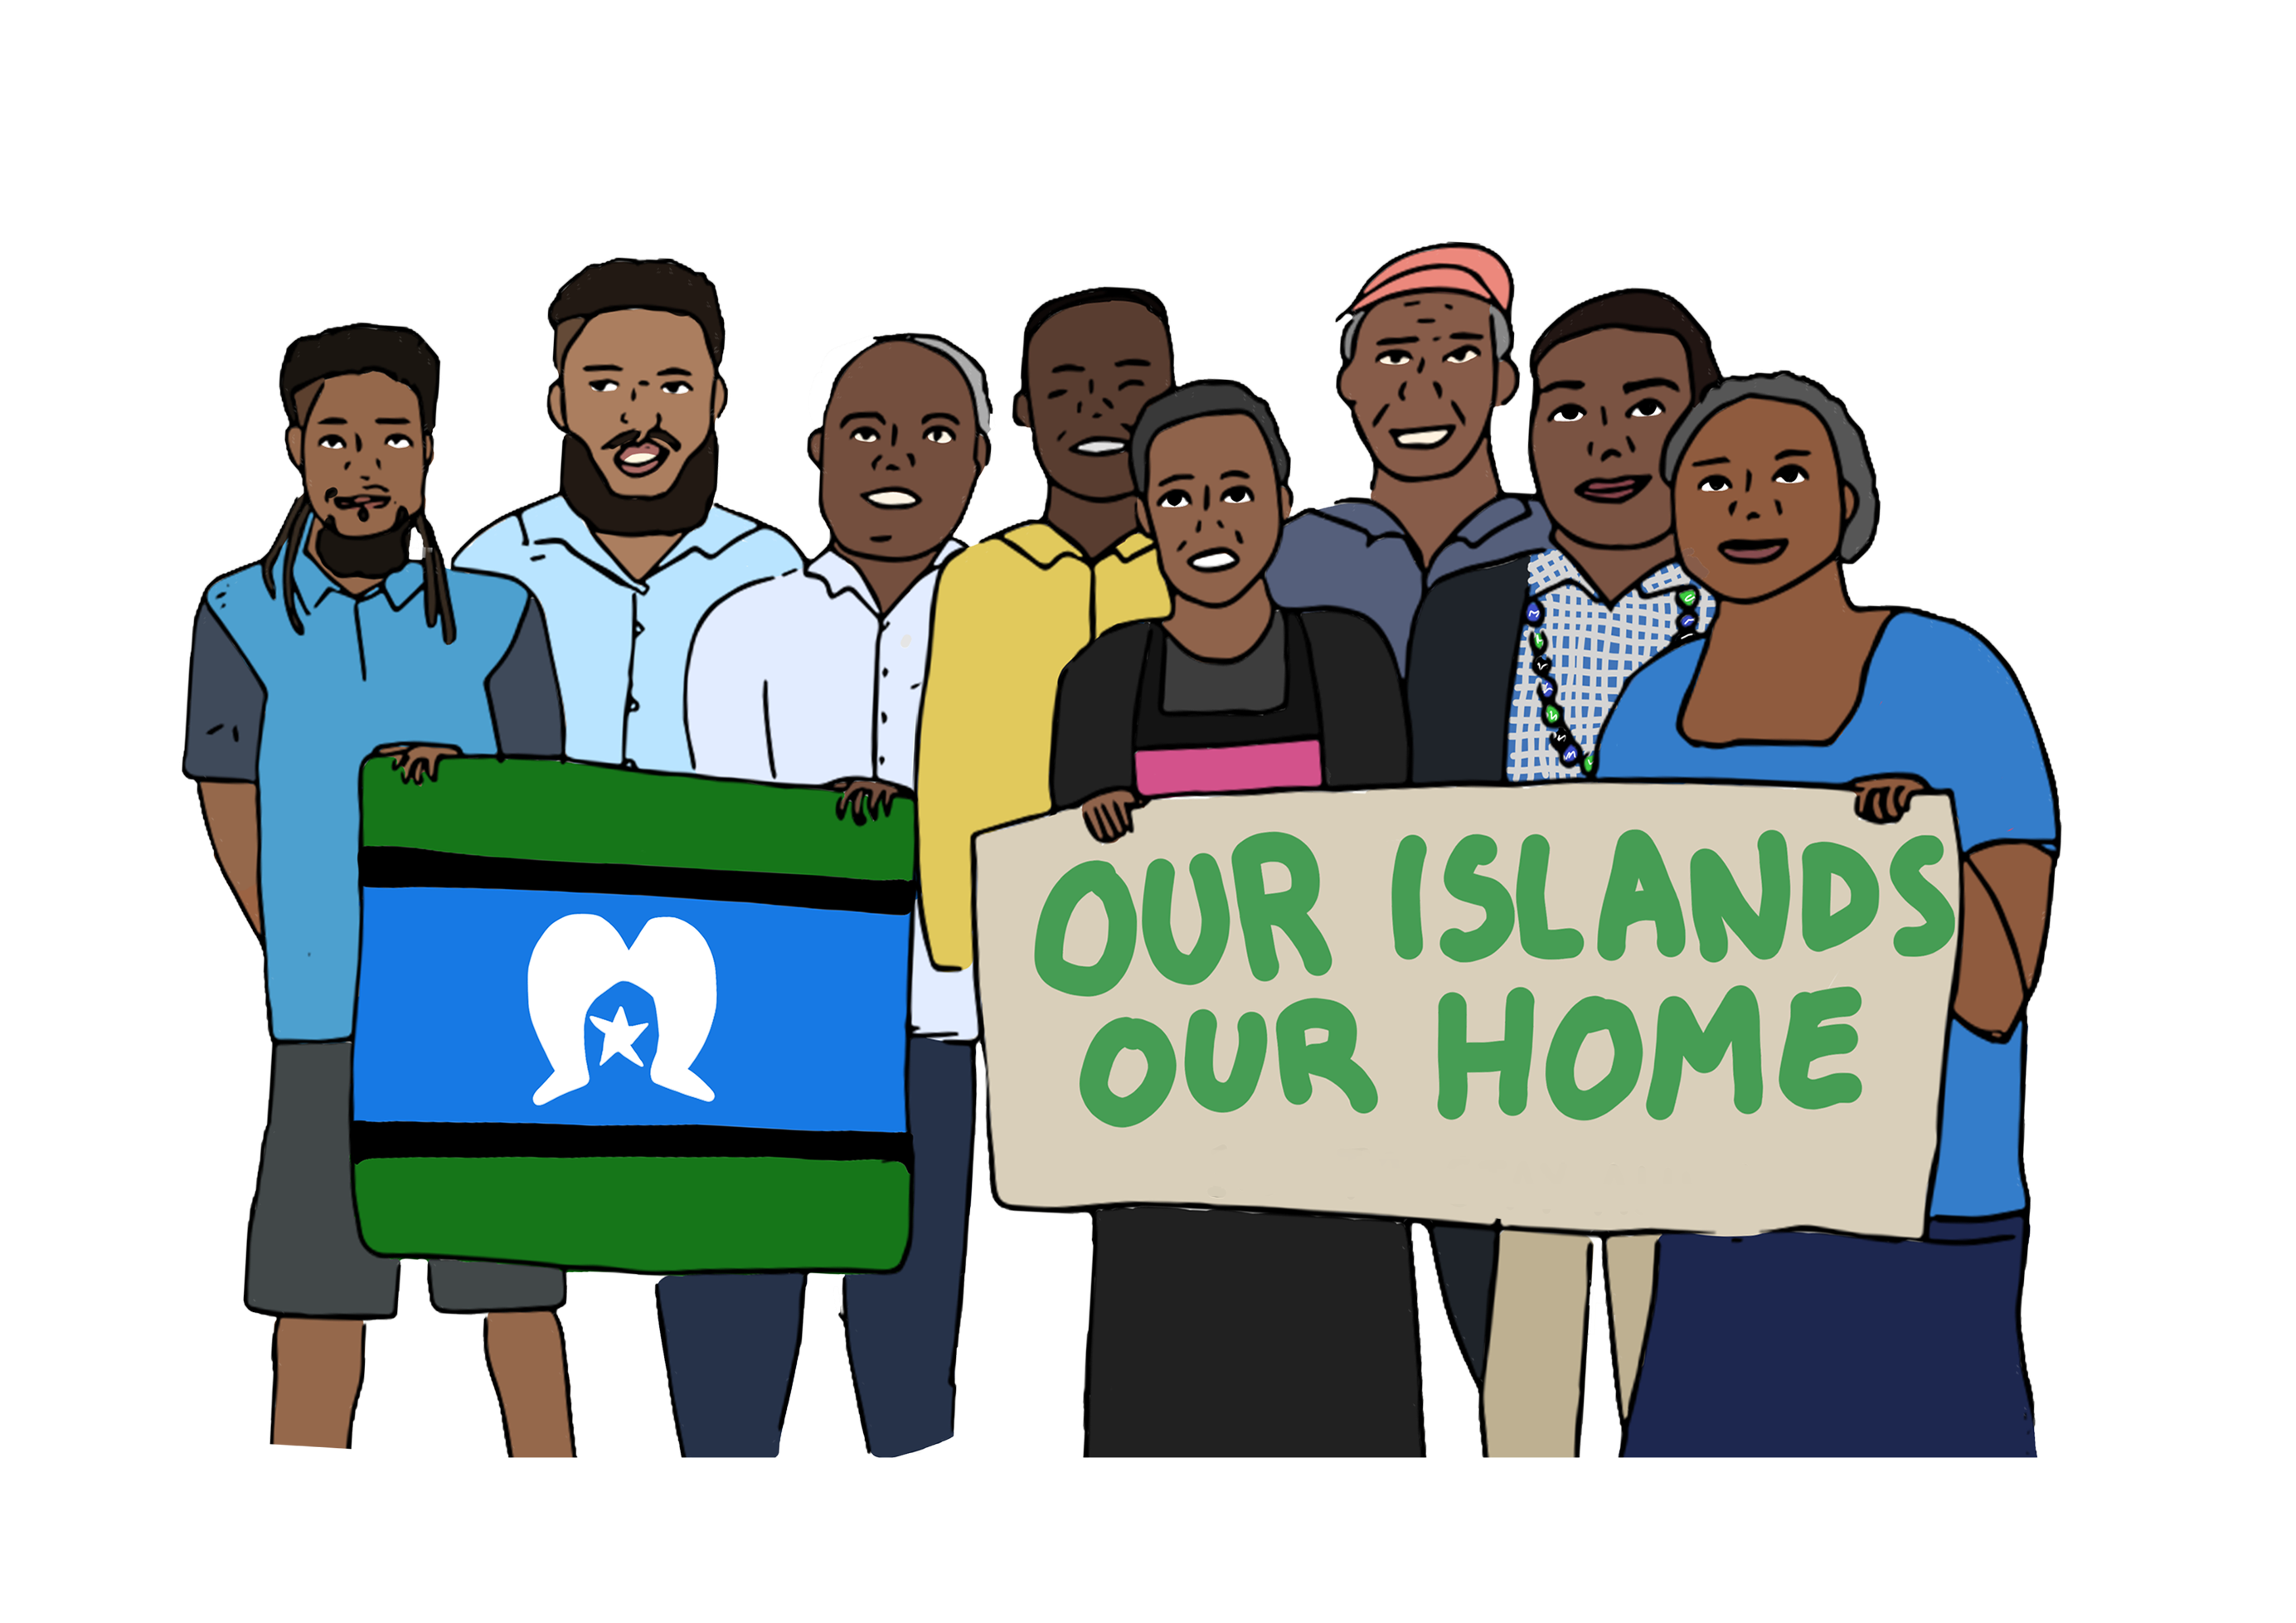 illustration of the Torres Strait 8 claimants holding an Our Islands Our Home banner